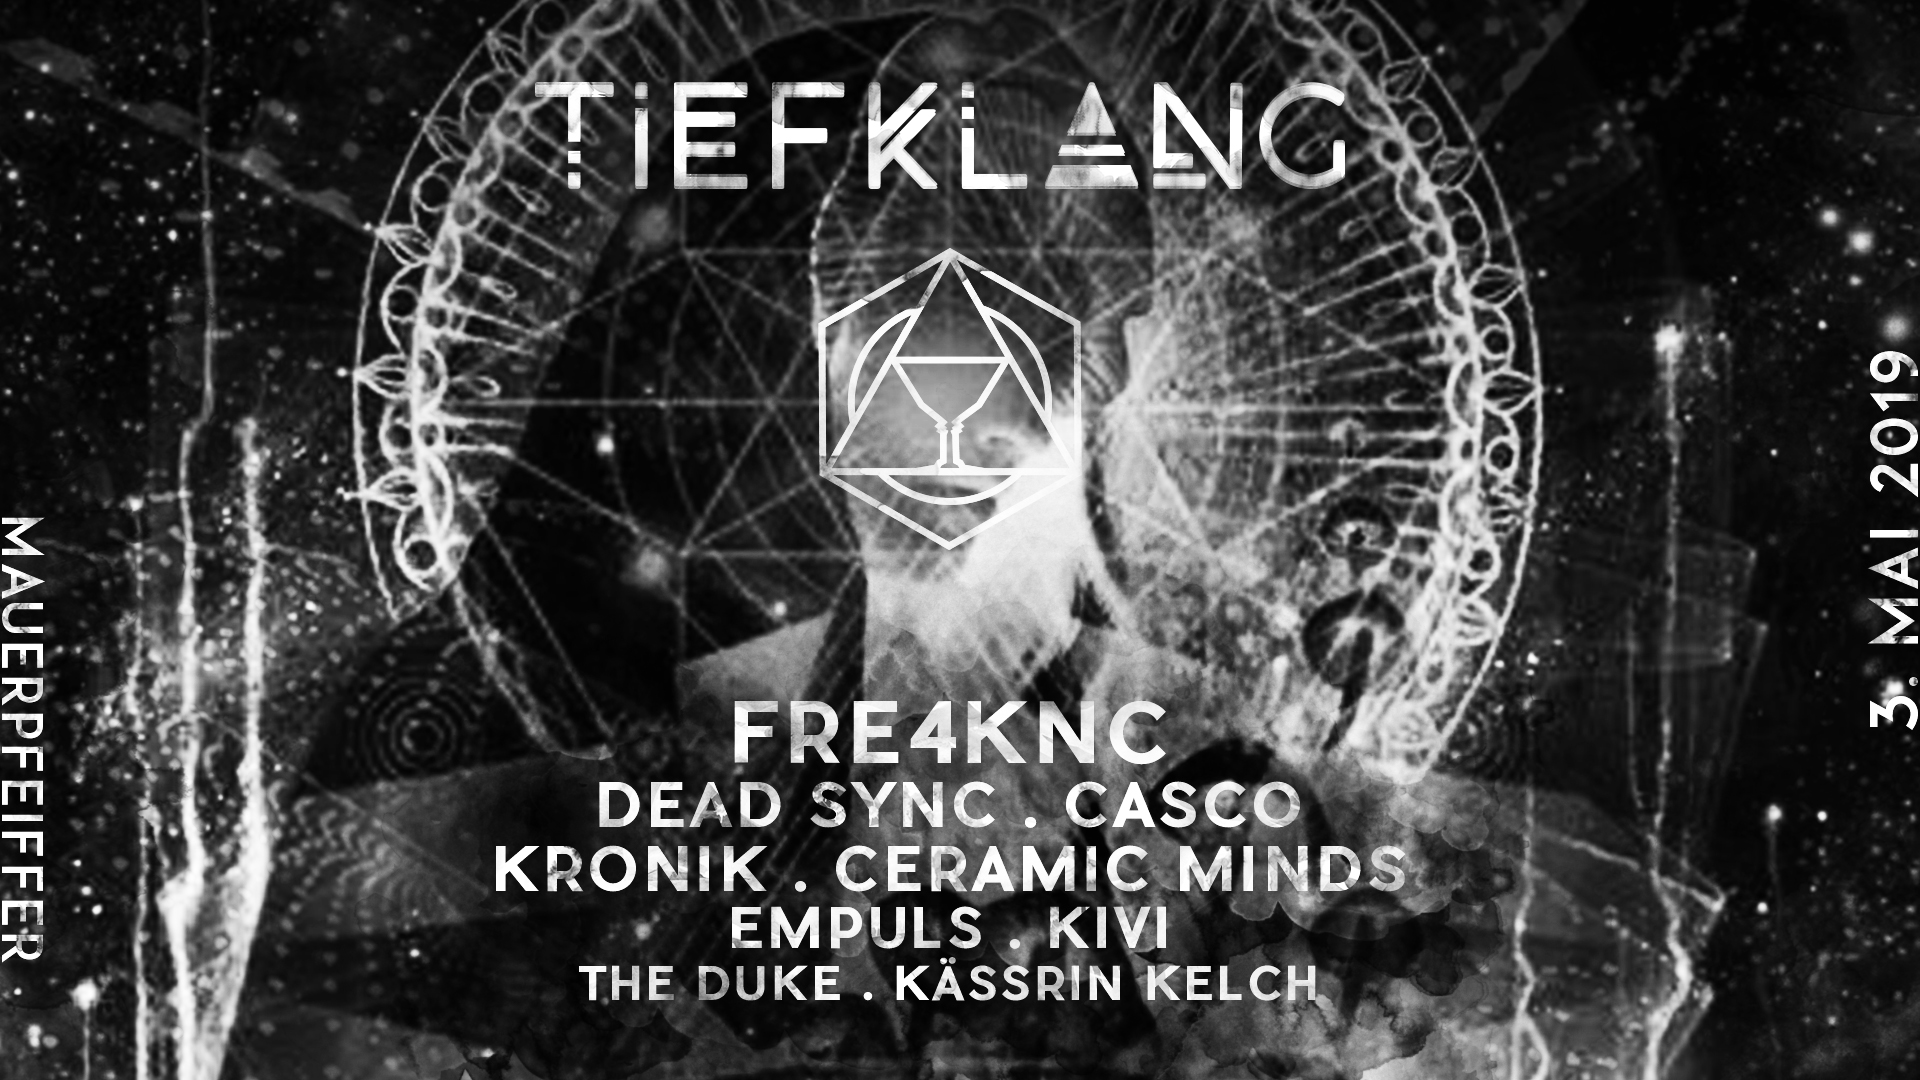 Tiefklang mit Fre4knc (Invisible, Critical | NL)